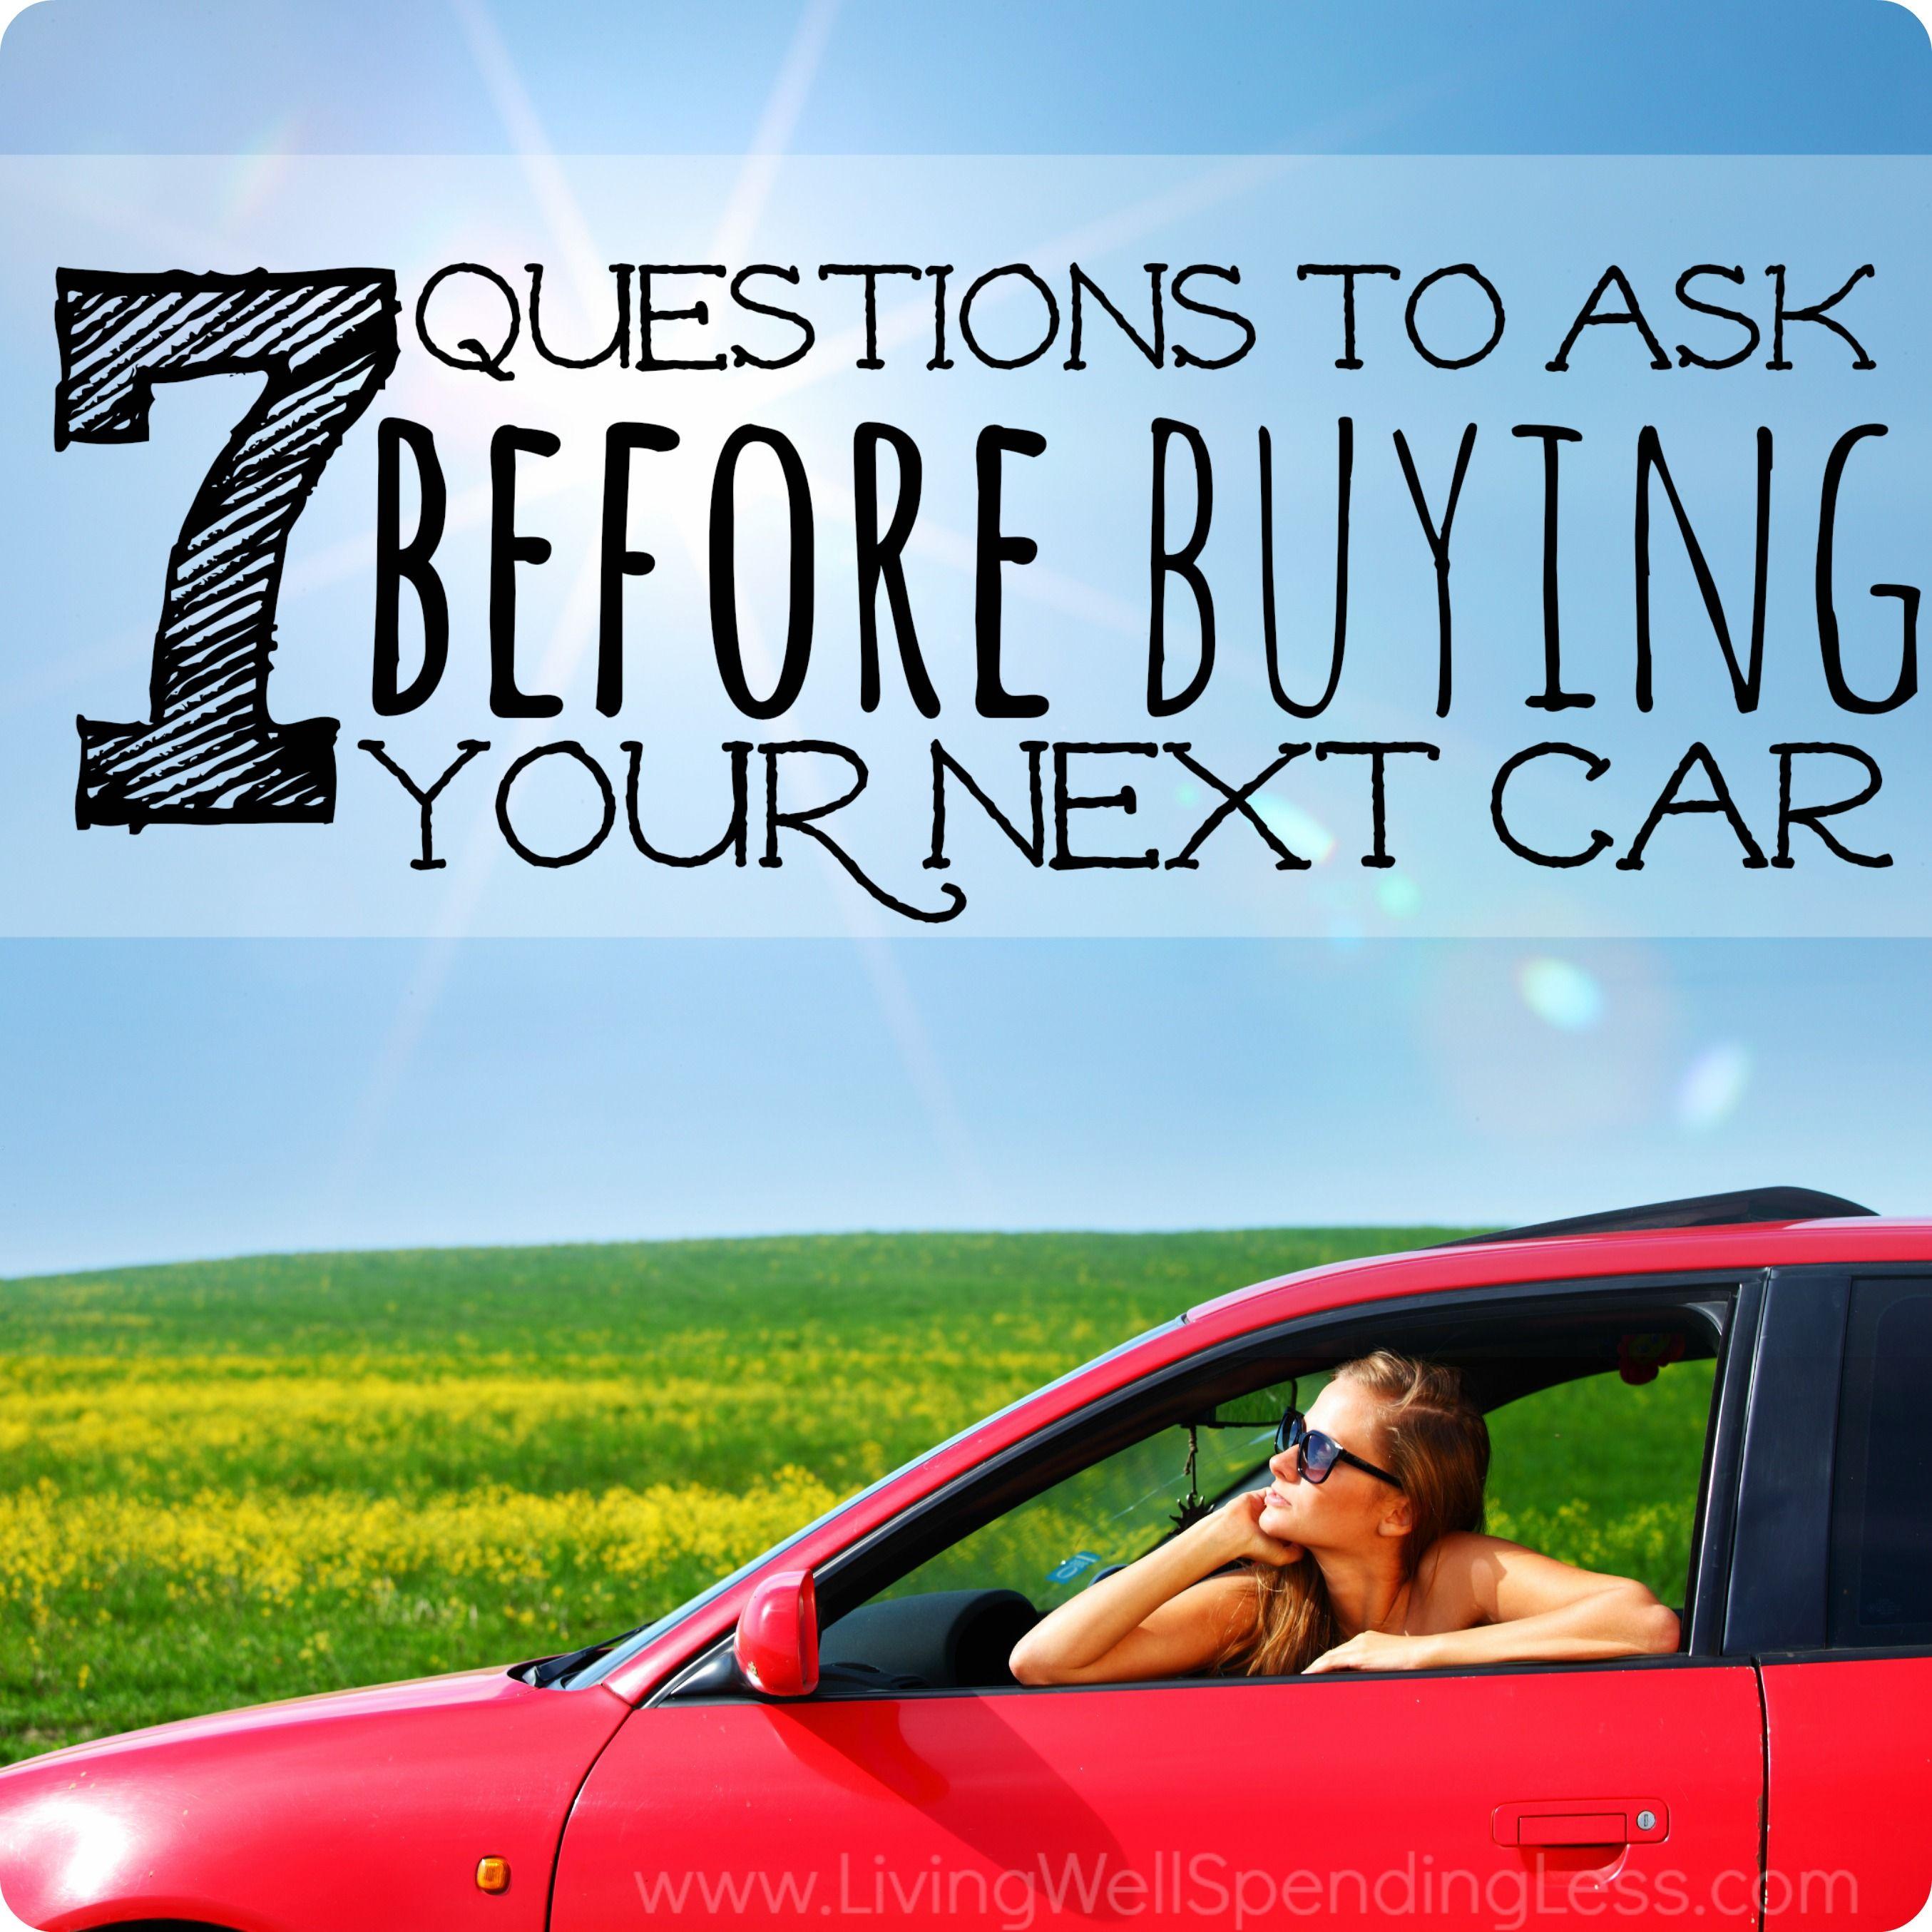 Questions To Ask When Buying A Car >> 7 Questions To Ask Before Buying A New Car Car Buying